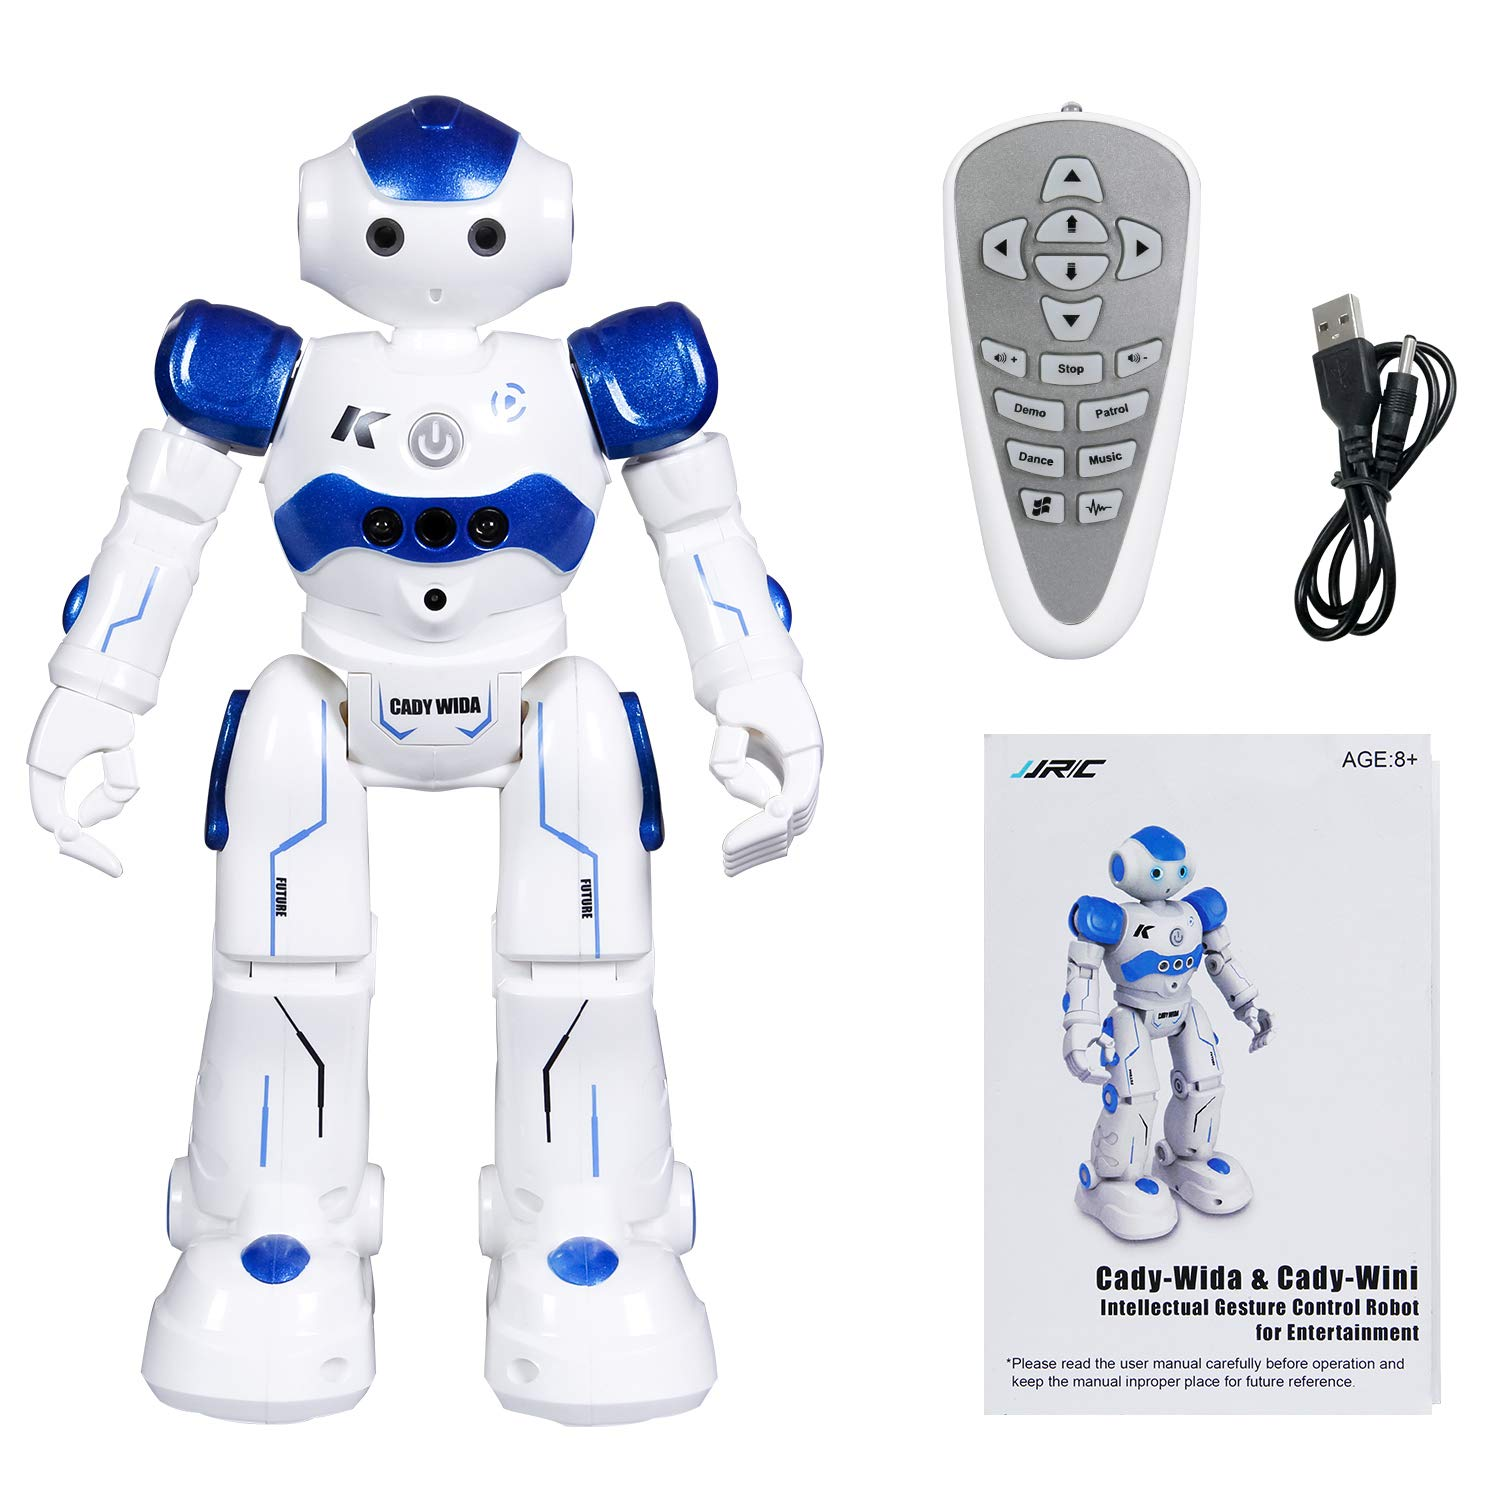 SGILE Remote Control Robot, RC Programmable Educational Robot for Kids Birthday Gift Present, Interactive Walking Singing Dancing Smart Intelligent Robotics for Kids Boy, Blue by SGILE (Image #5)